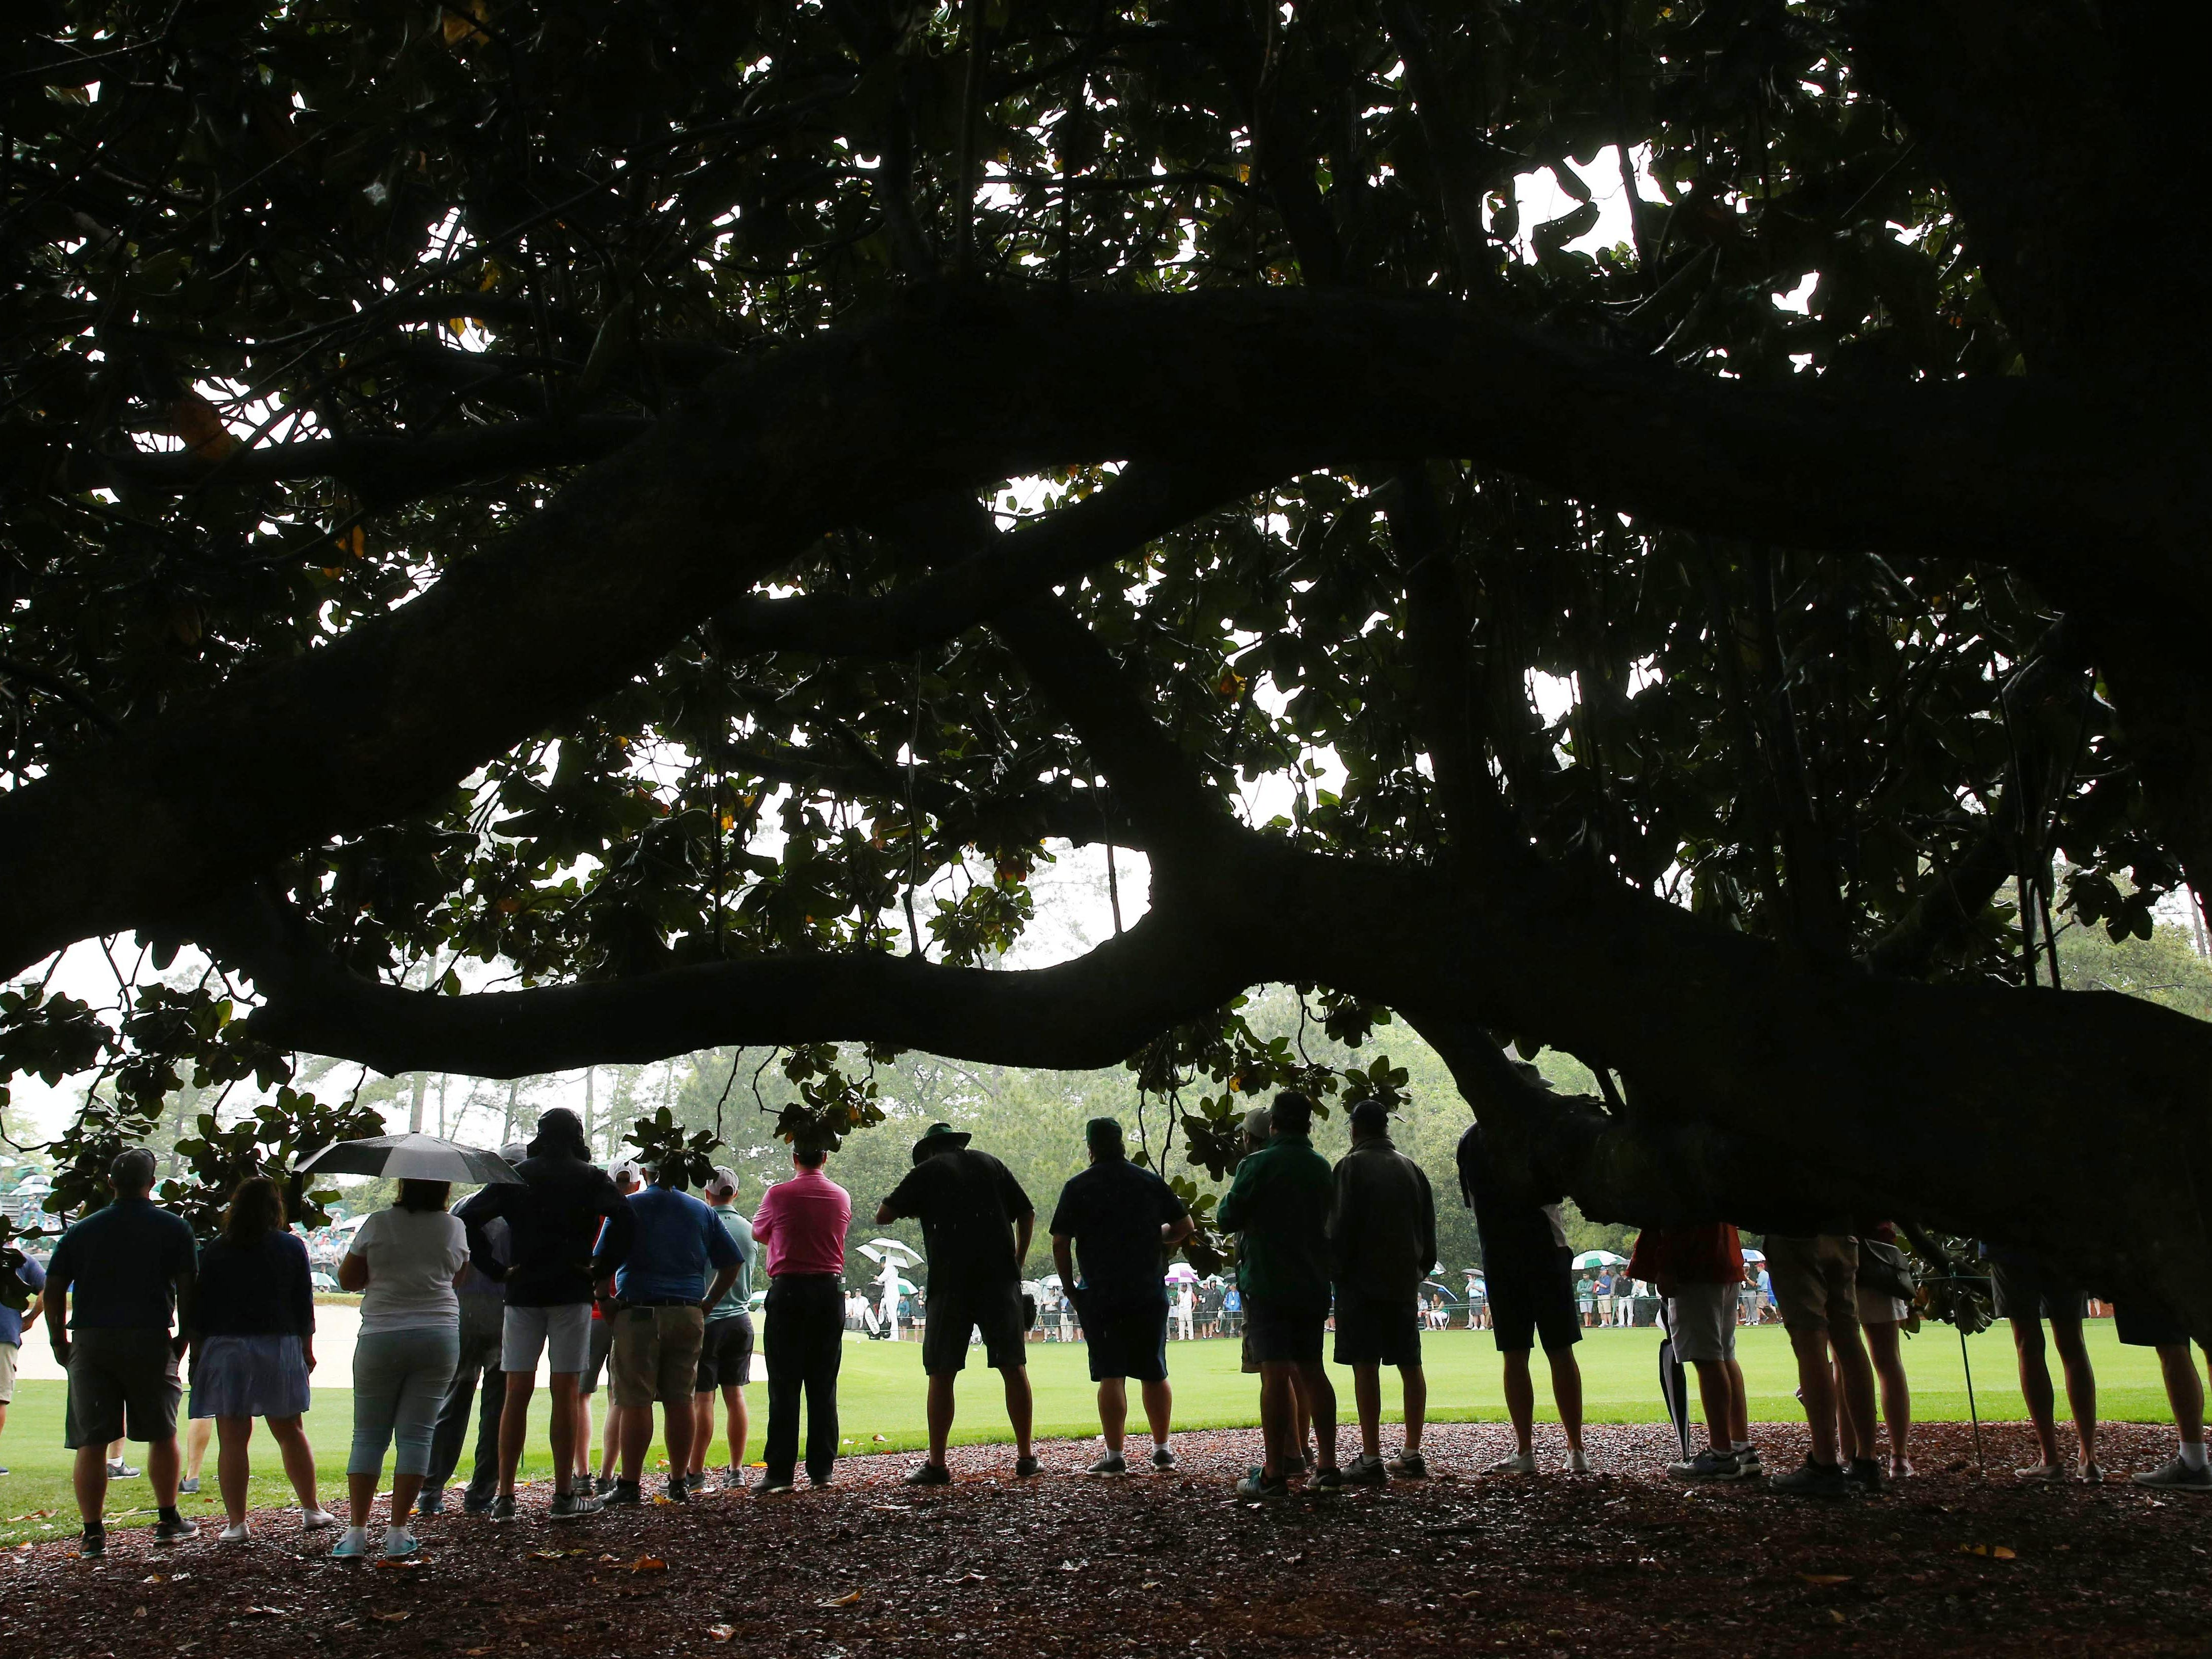 Patrons watch from under the big oak tree as rain falls during the second round of the Masters.